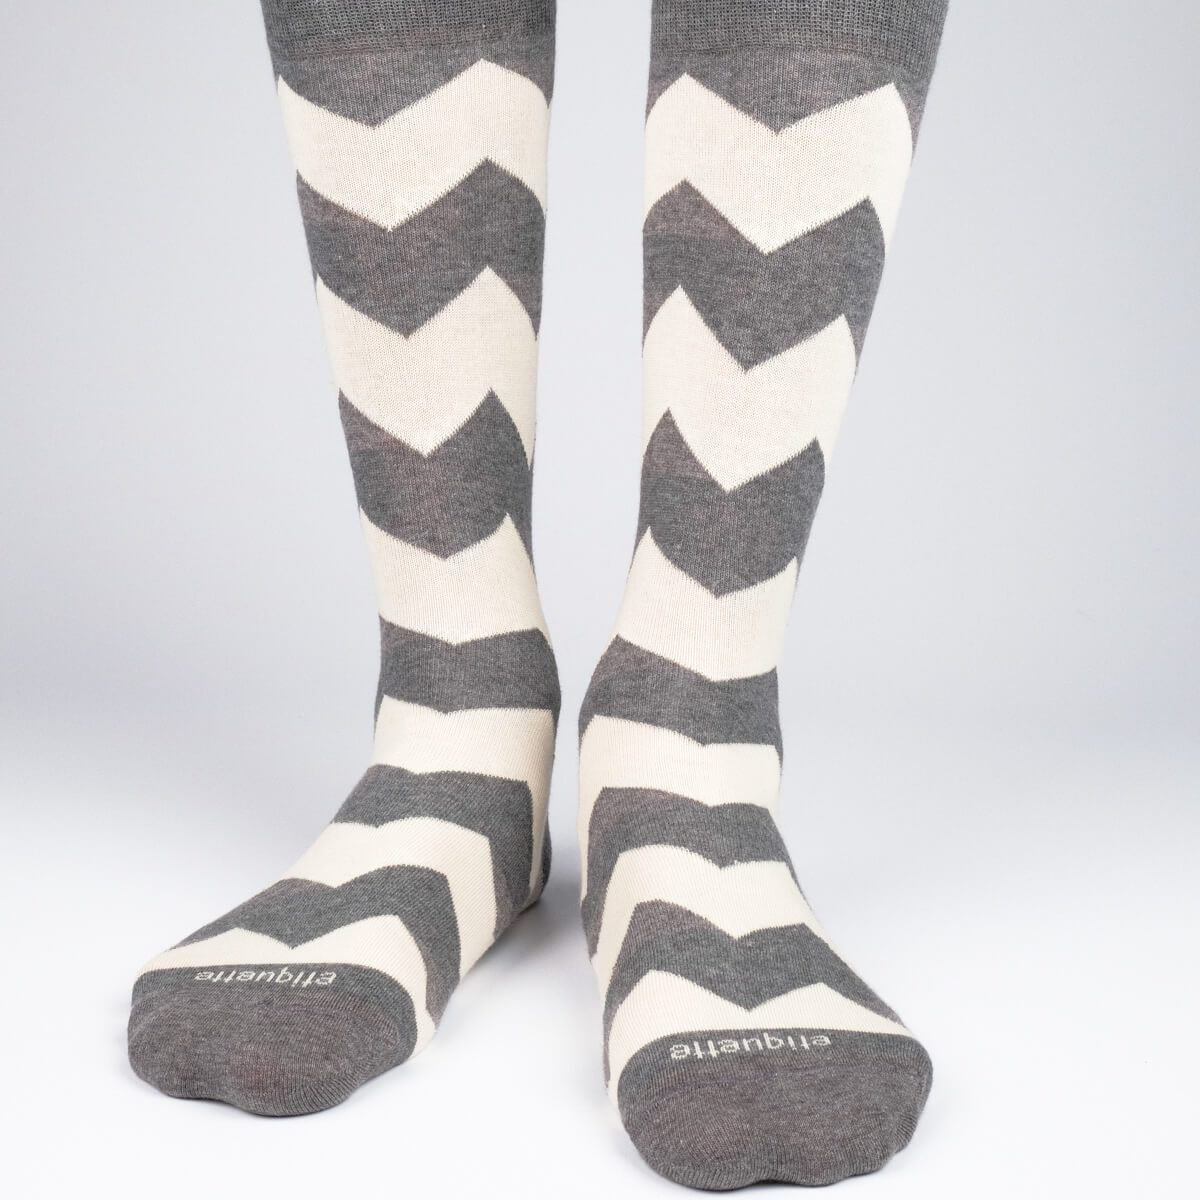 Matterhorn Stripes - Dark Grey - Mens Socks | Etiquette Clothiers Global Official